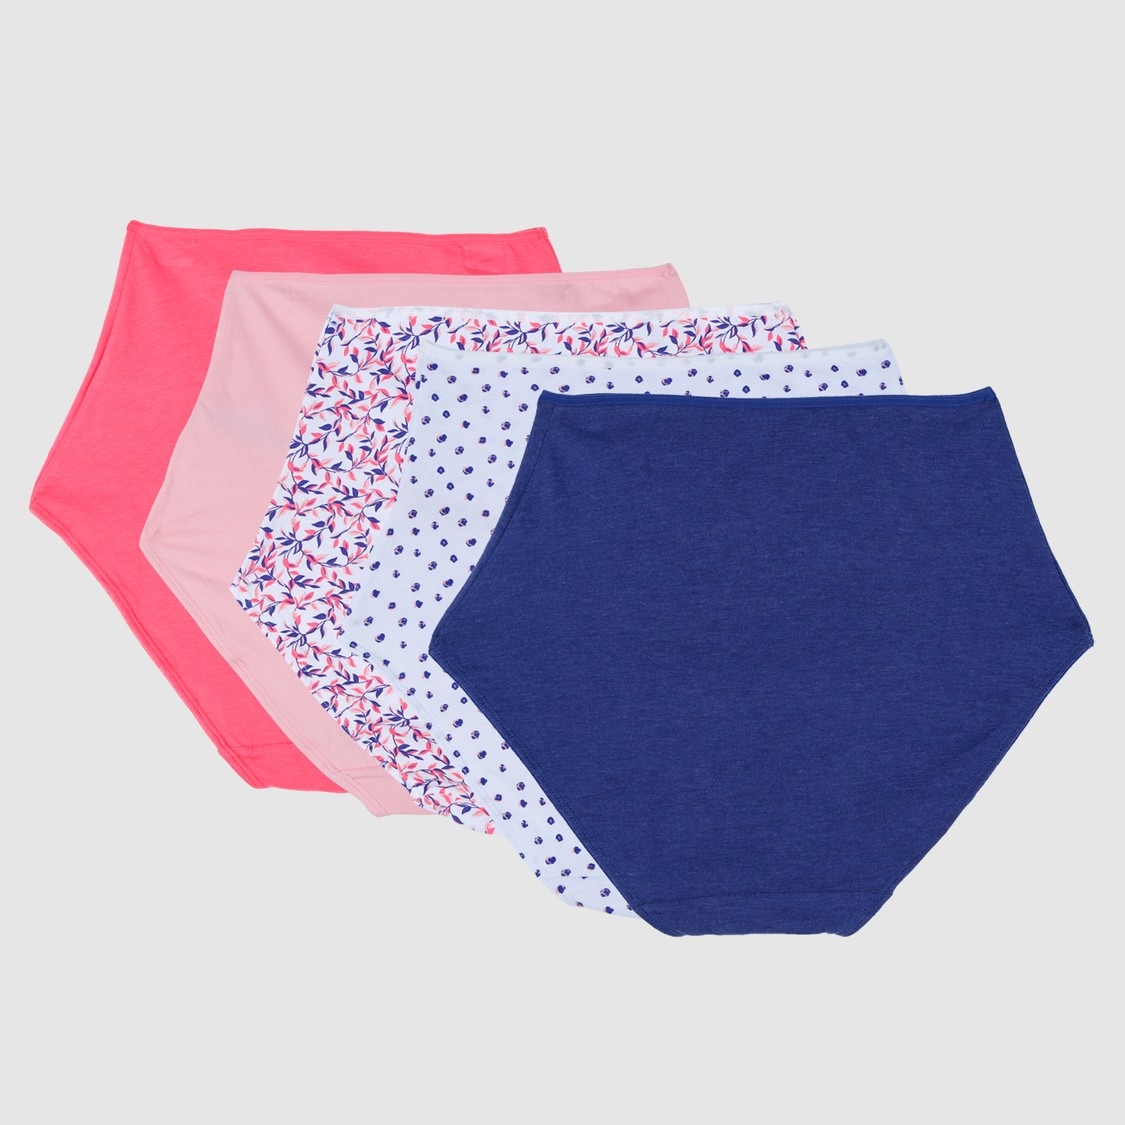 Briefs with Elasticised Waistband - Set of 5